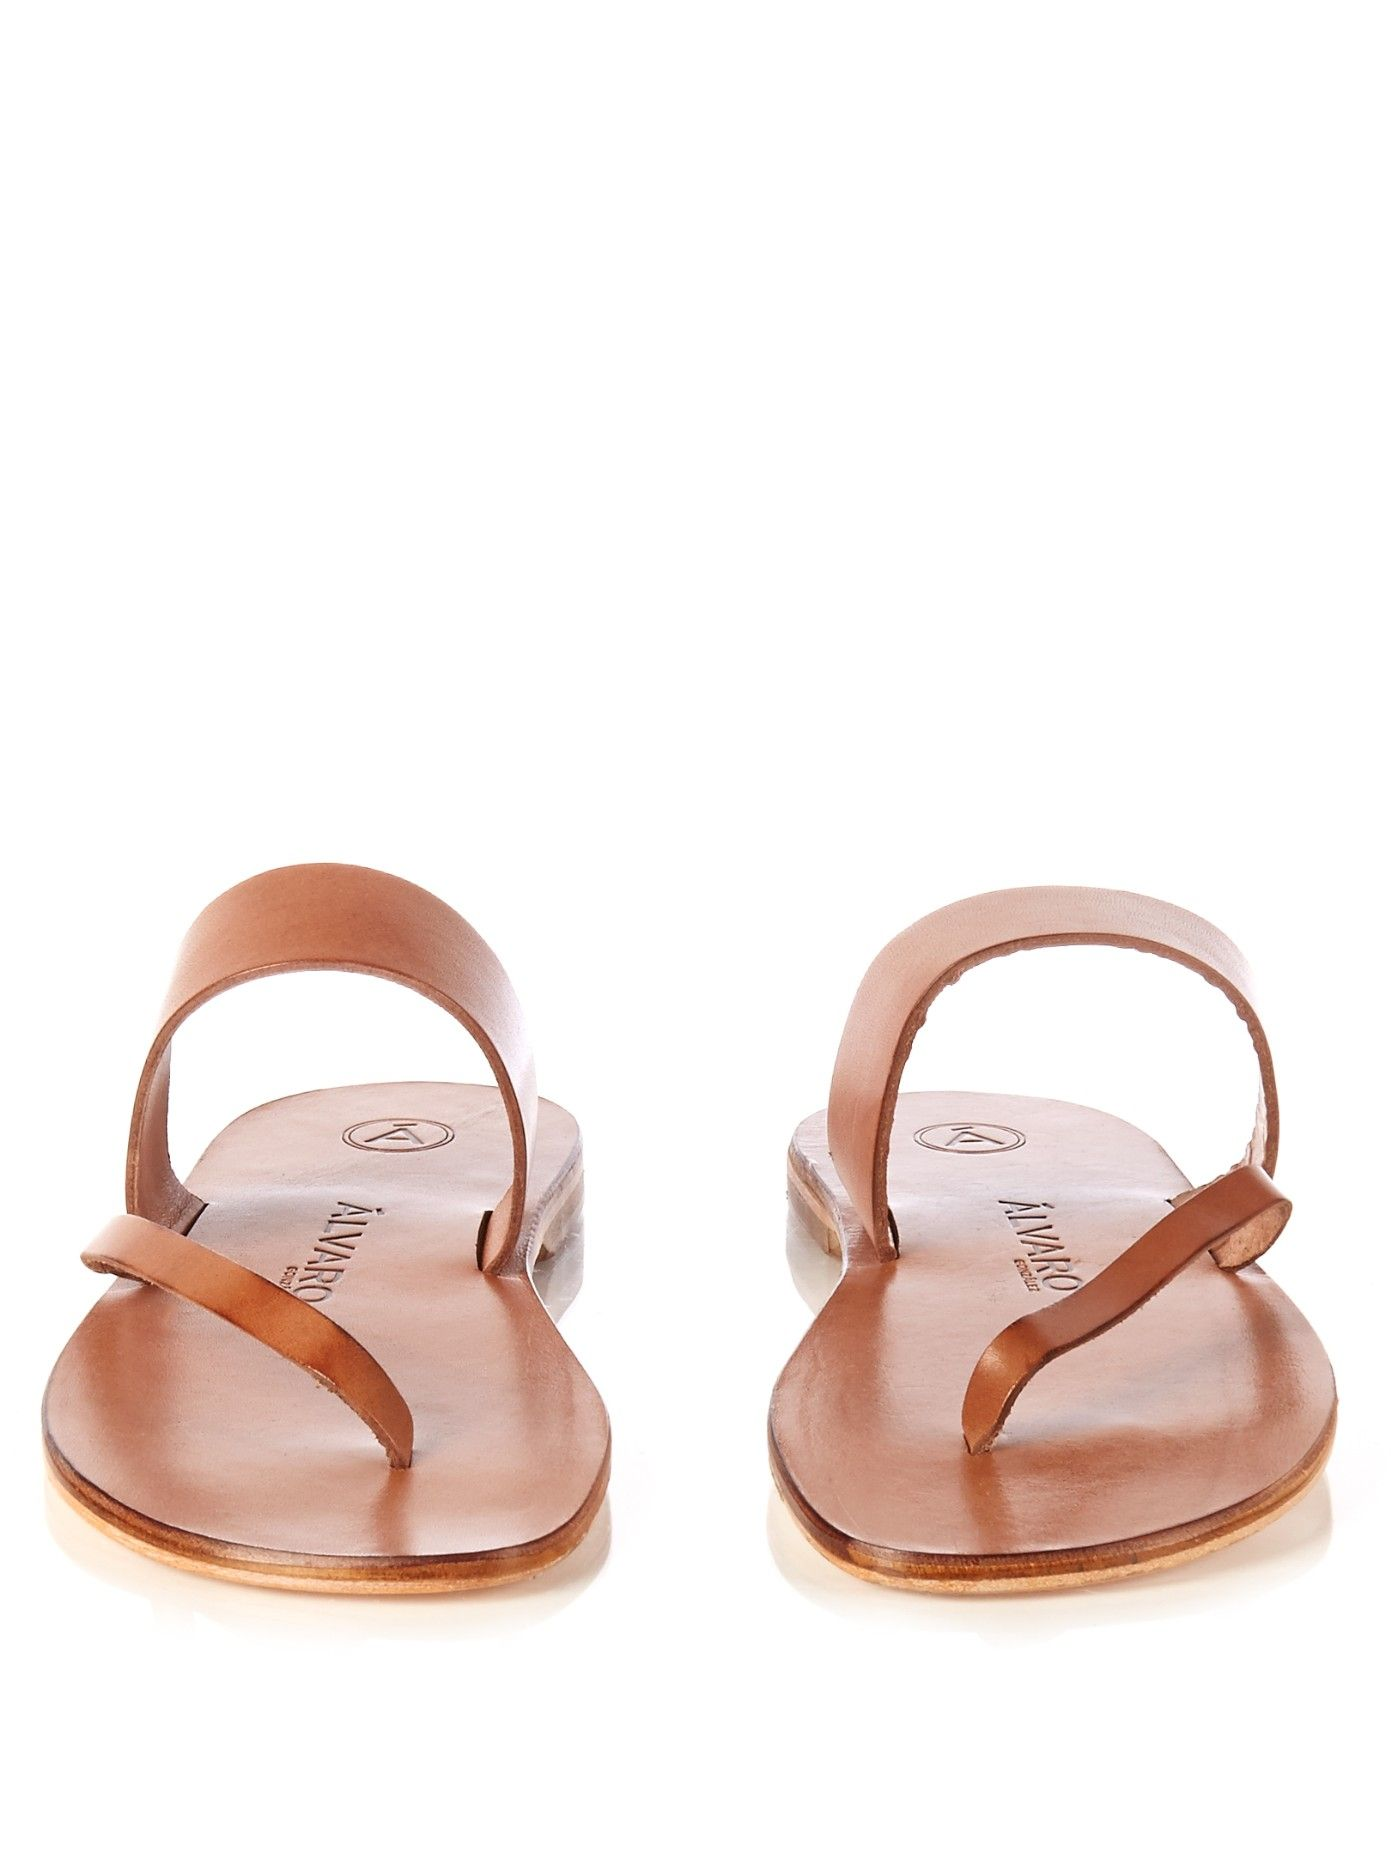 Men s leather thong sandal